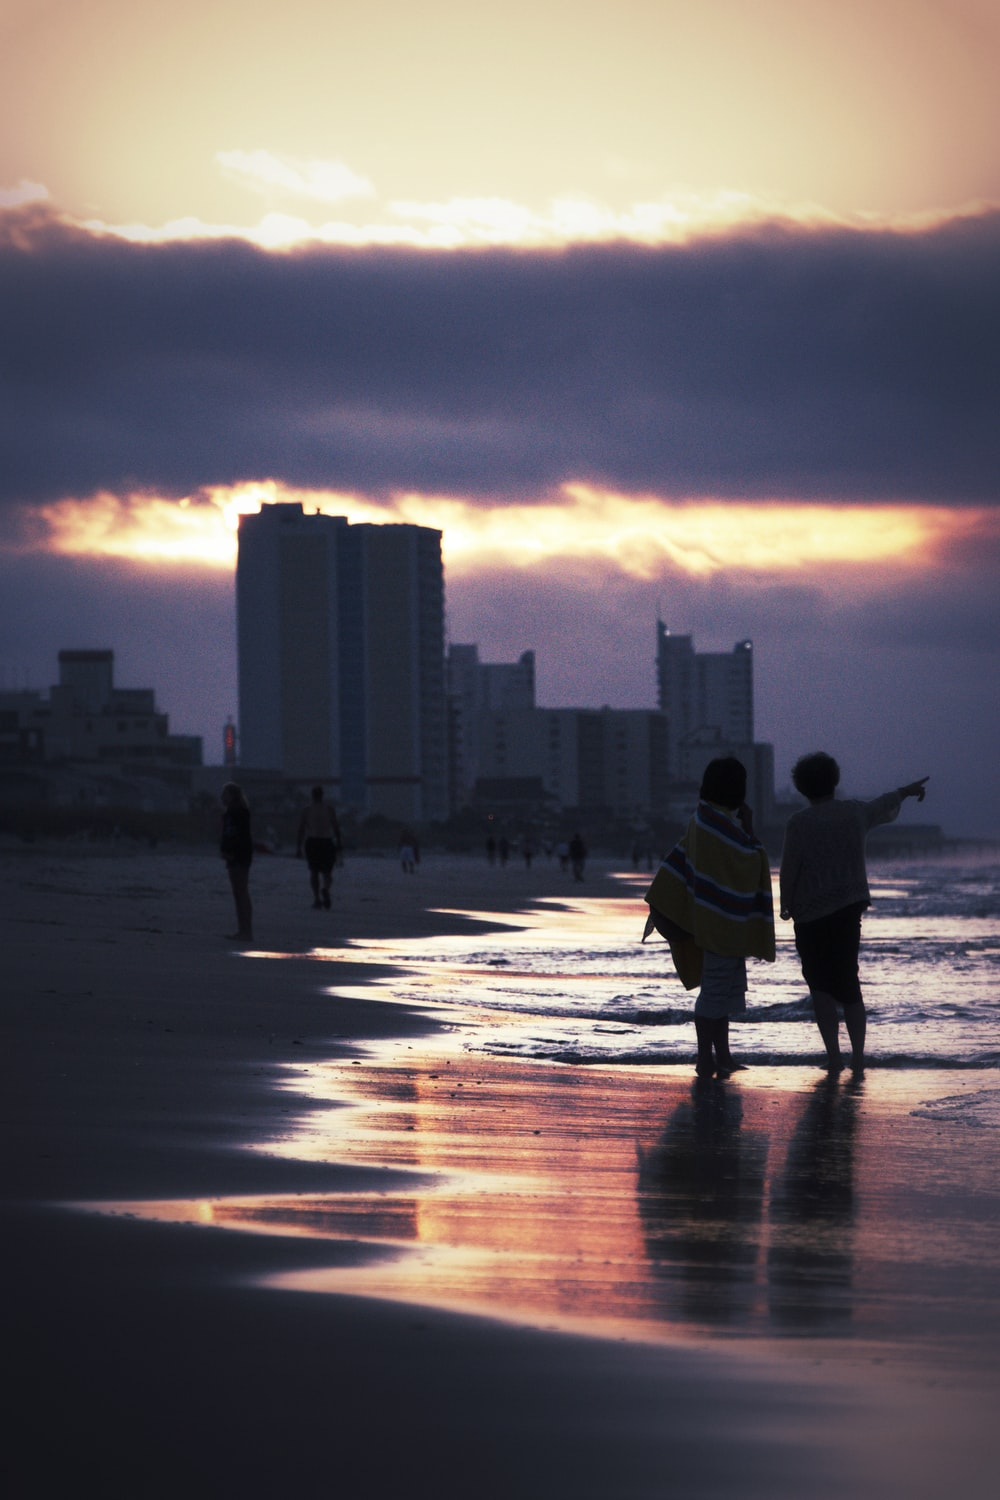 two people walking on seashore near buildings during golden hour